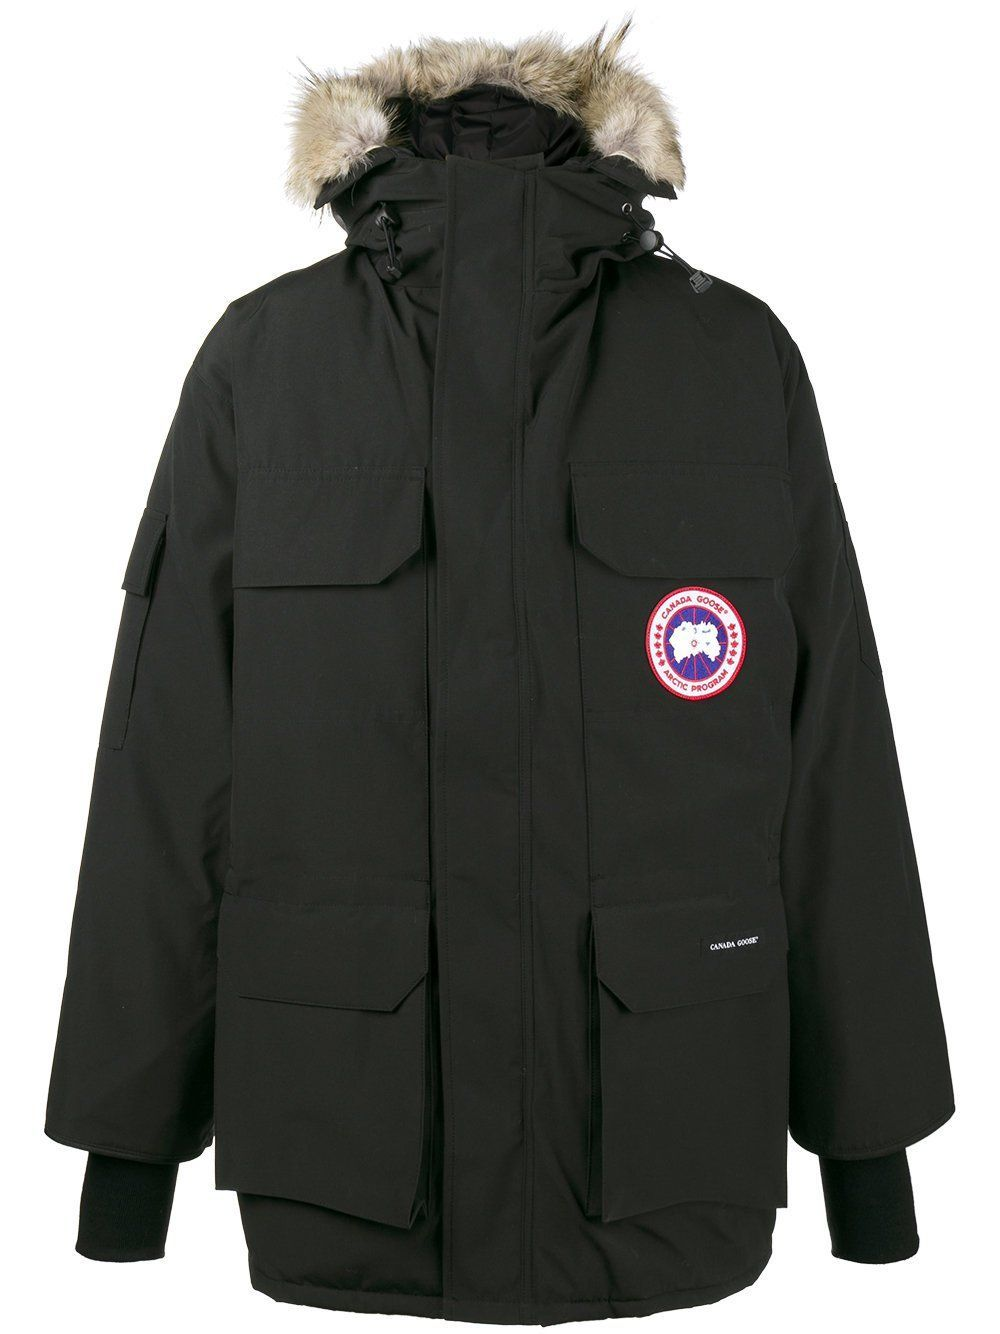 Canada goose expedition parka | Canada goose expedition ...